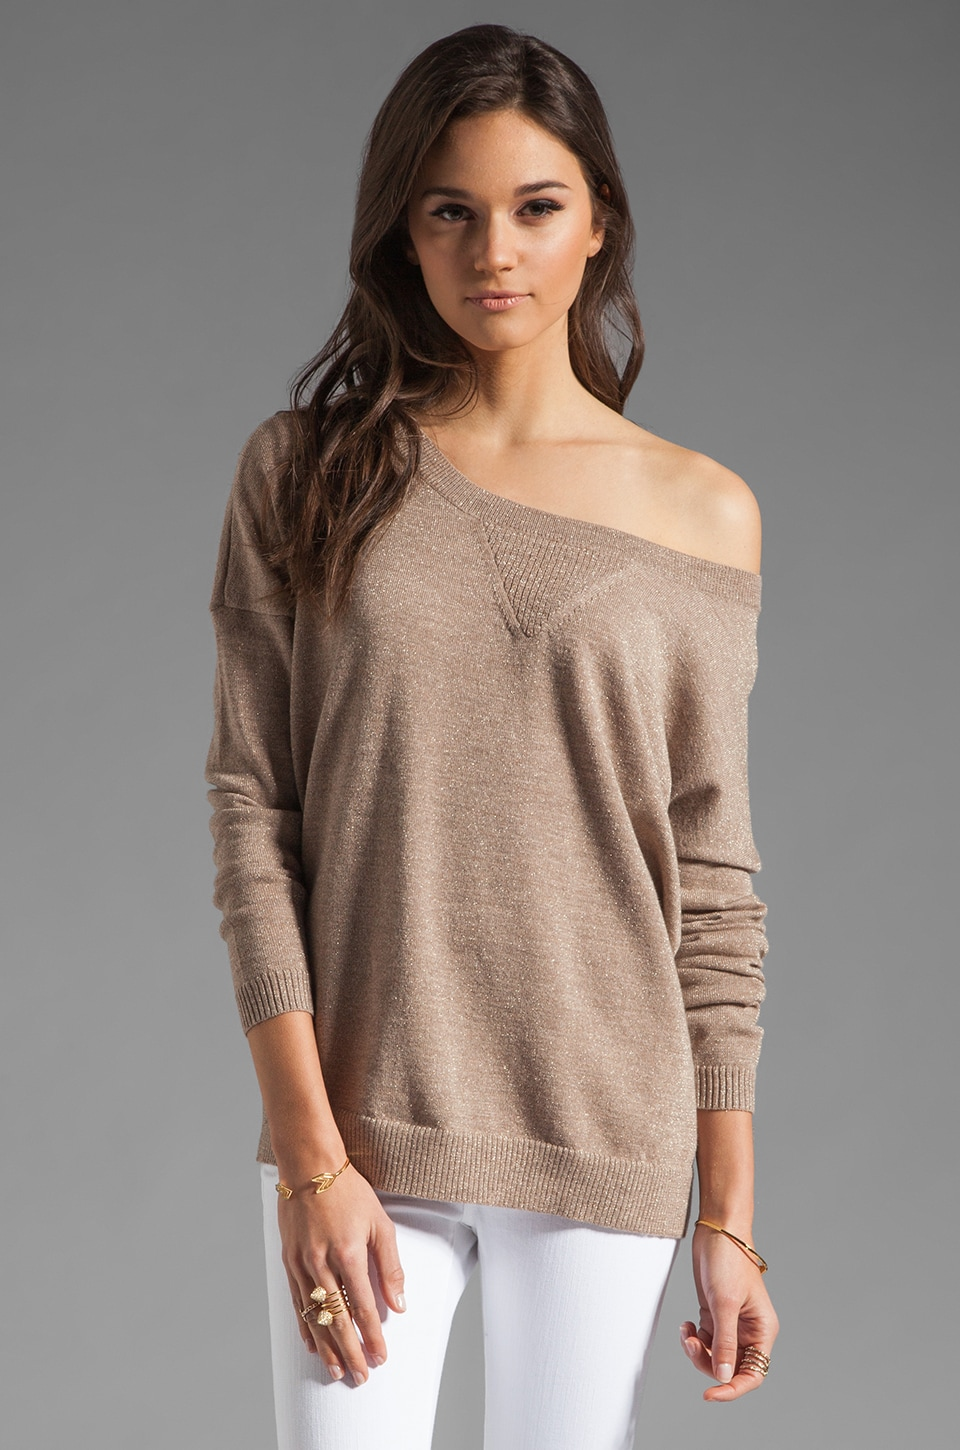 Haute Hippie Lurex Off the Shoulder Sweatshirt in Fawn